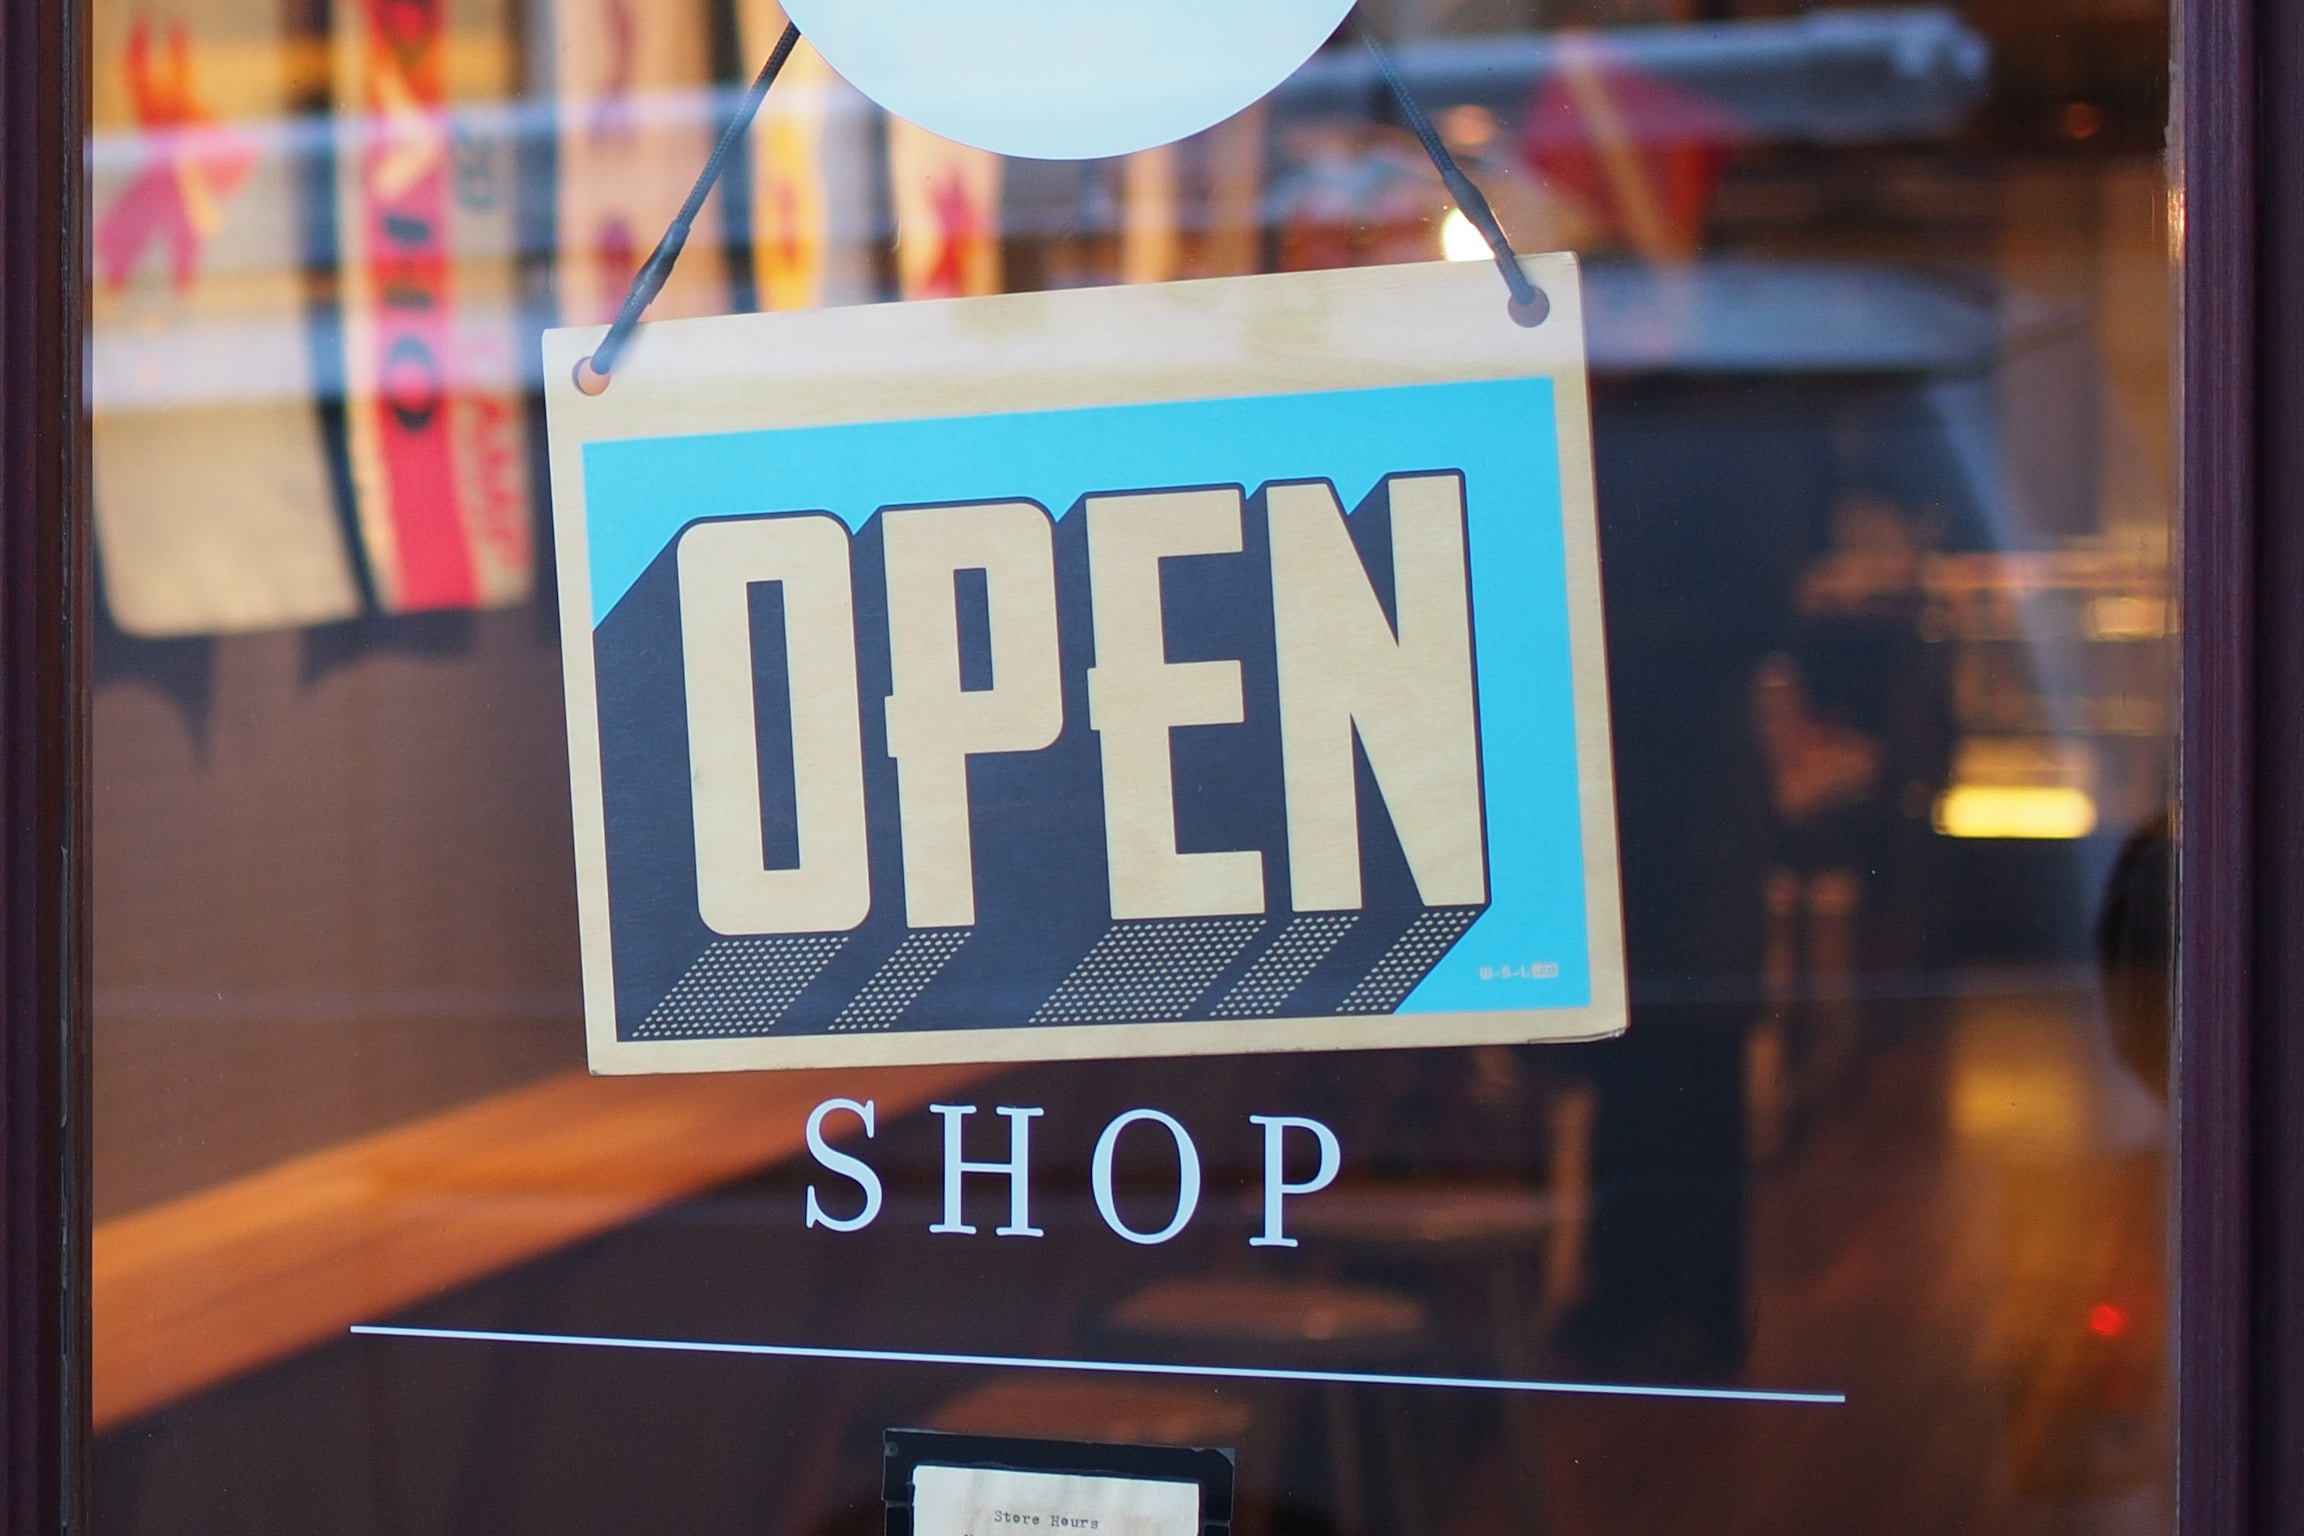 Open Shop - ecommerce | Photo by Mike Petrucci on Unsplash